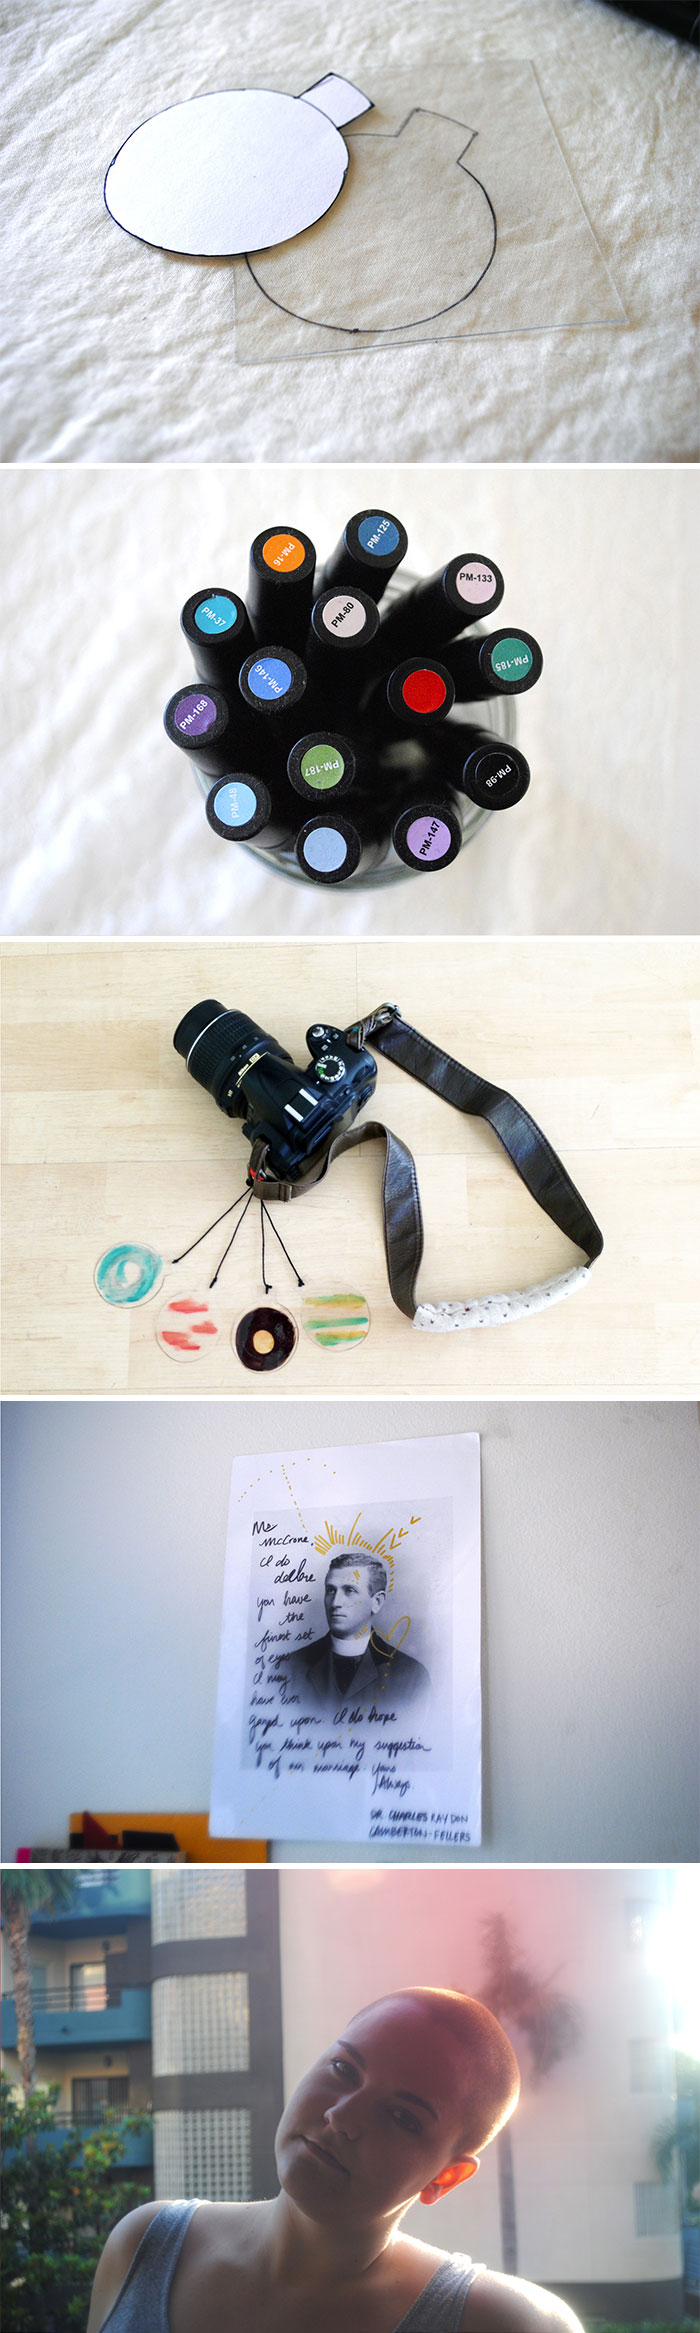 easy-camera-hacks-how-to-improve-photography-skills-596f4ed13eac7__700